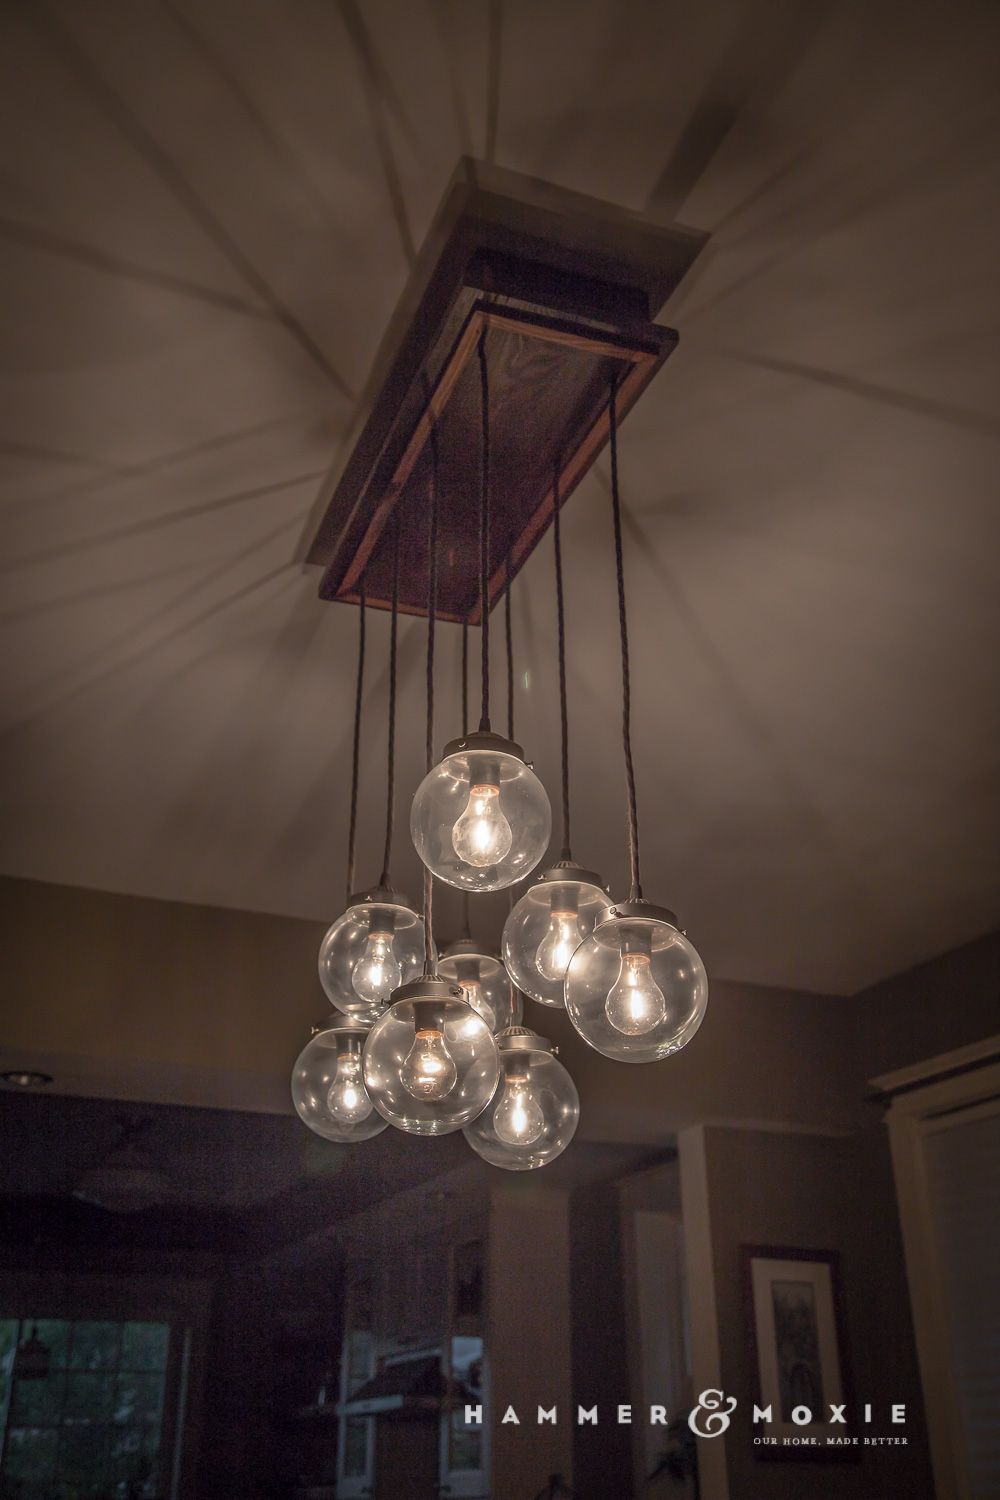 hight resolution of homemade chandelier with irregularly hung globes cotton covered wiring and a ceiling box made of reclaimed wood hammer moxie